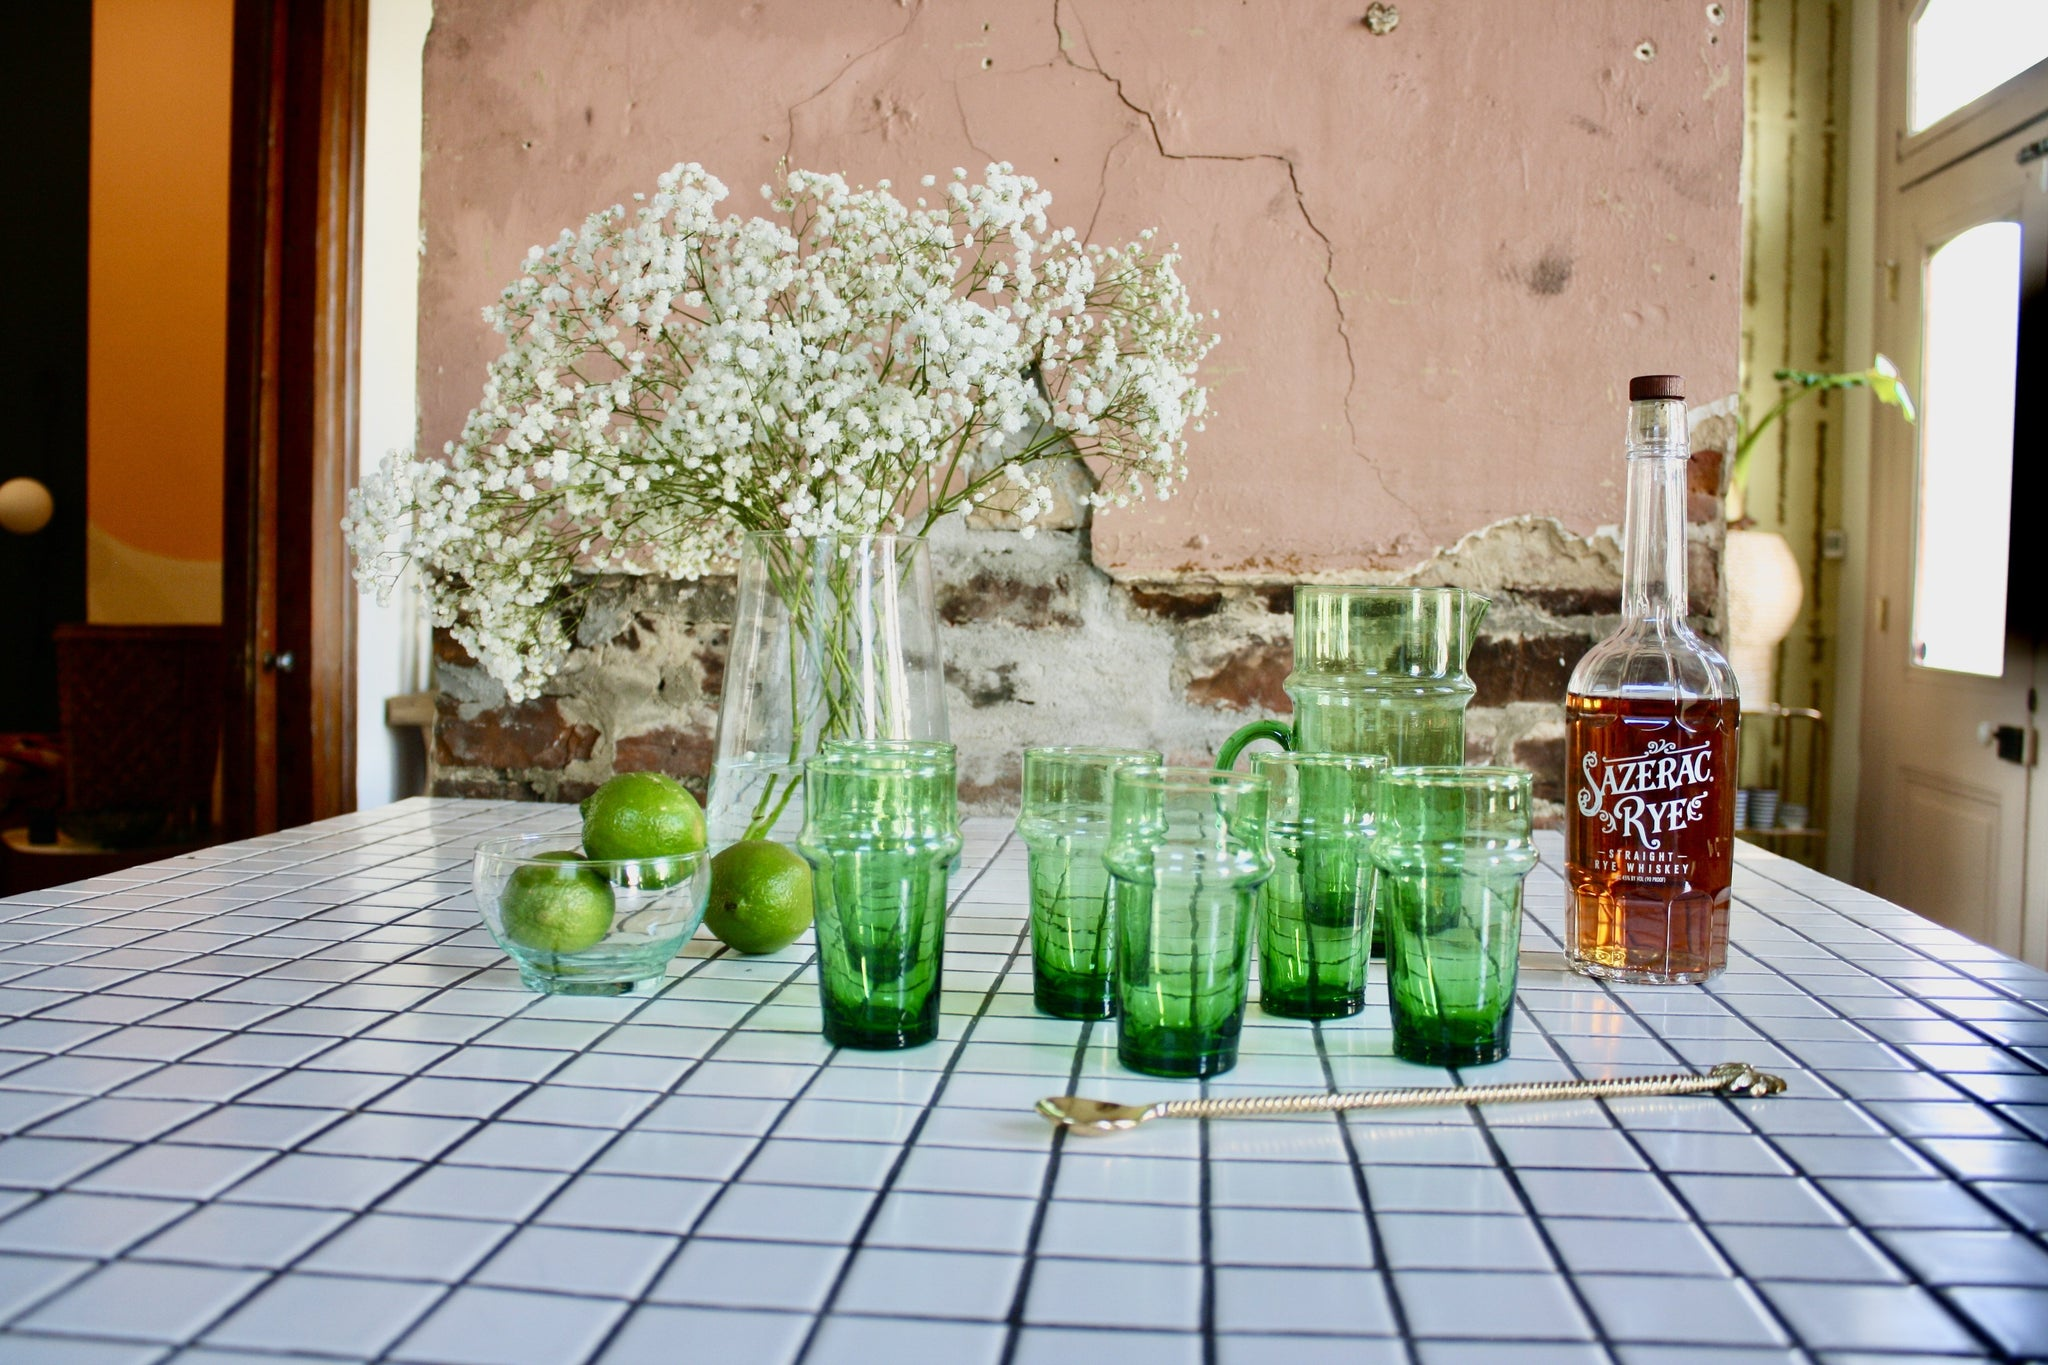 Set of 6 green handblown glasses handmade in Morocco from recycled glass by artisans using traditional techniques since 1946.